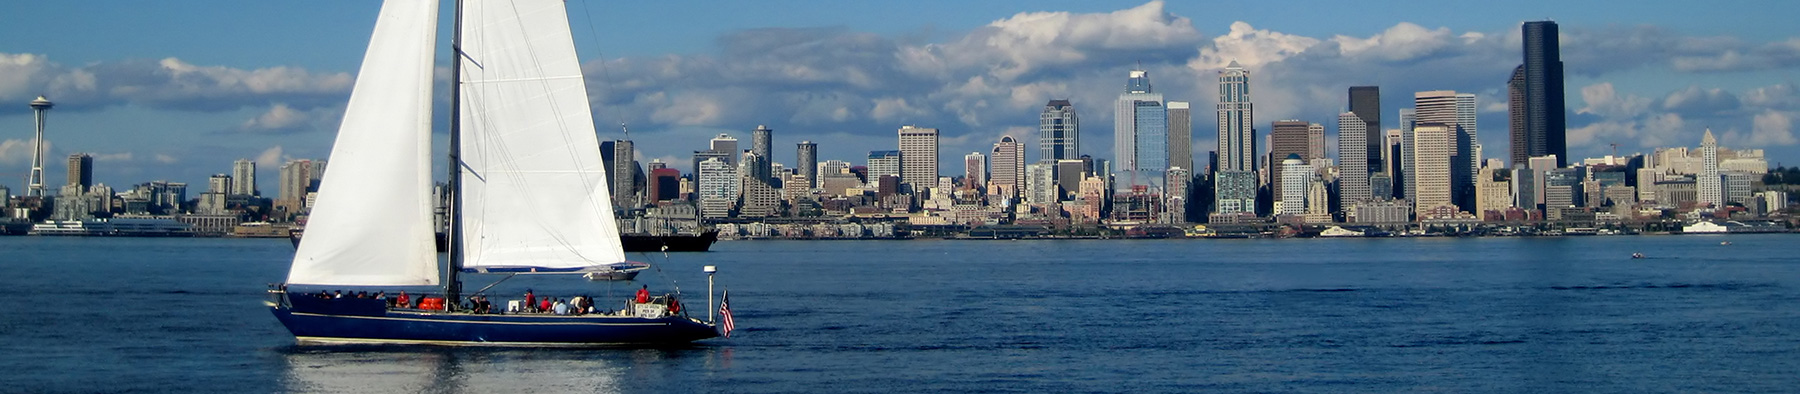 Seattle Skyline with sailboat in foreground